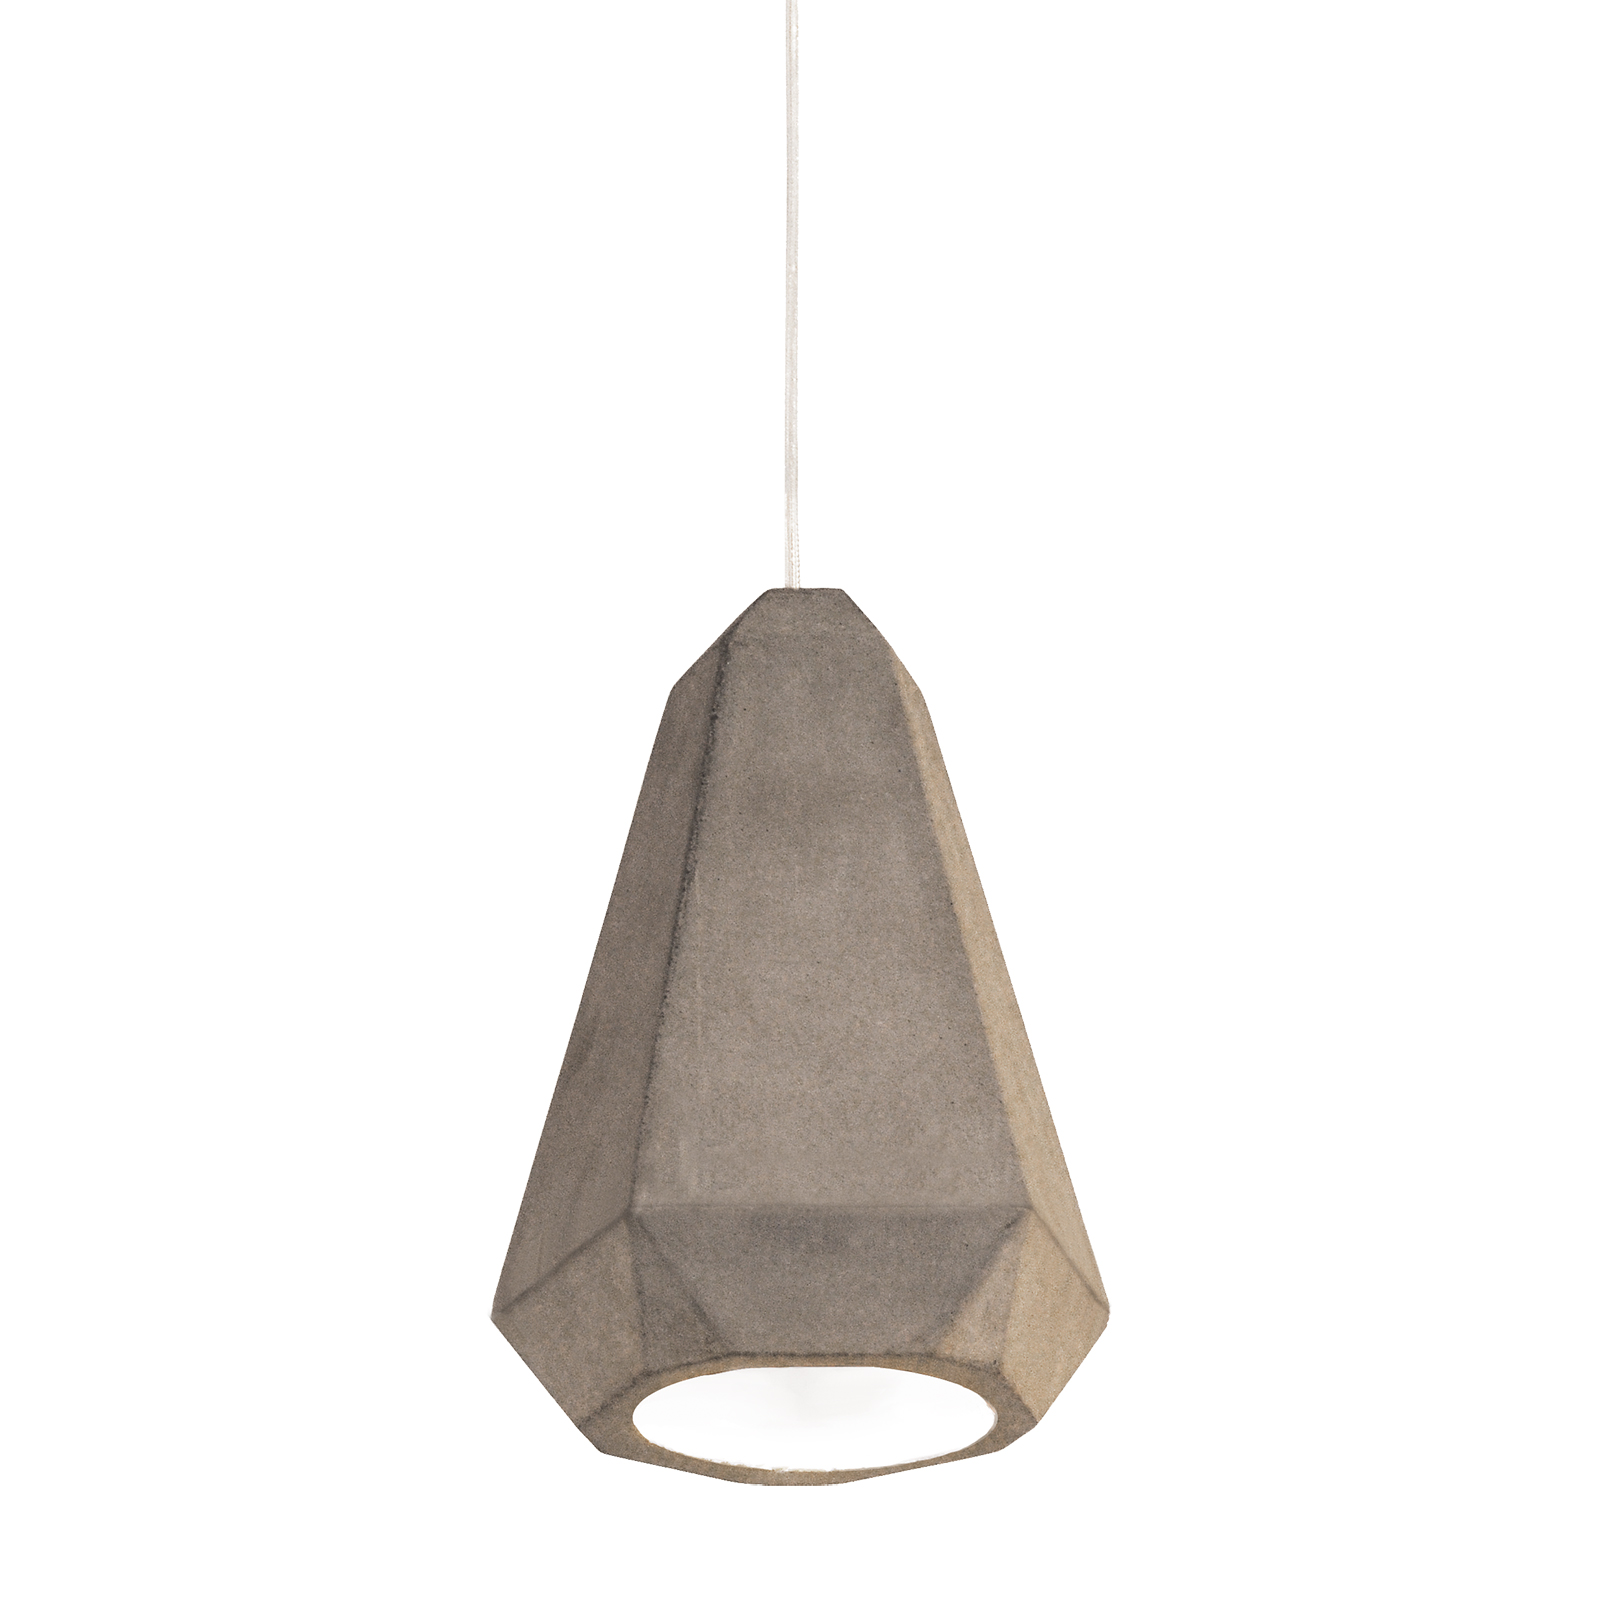 pendant light free form garden urban concrete home elk overstock today shipping product